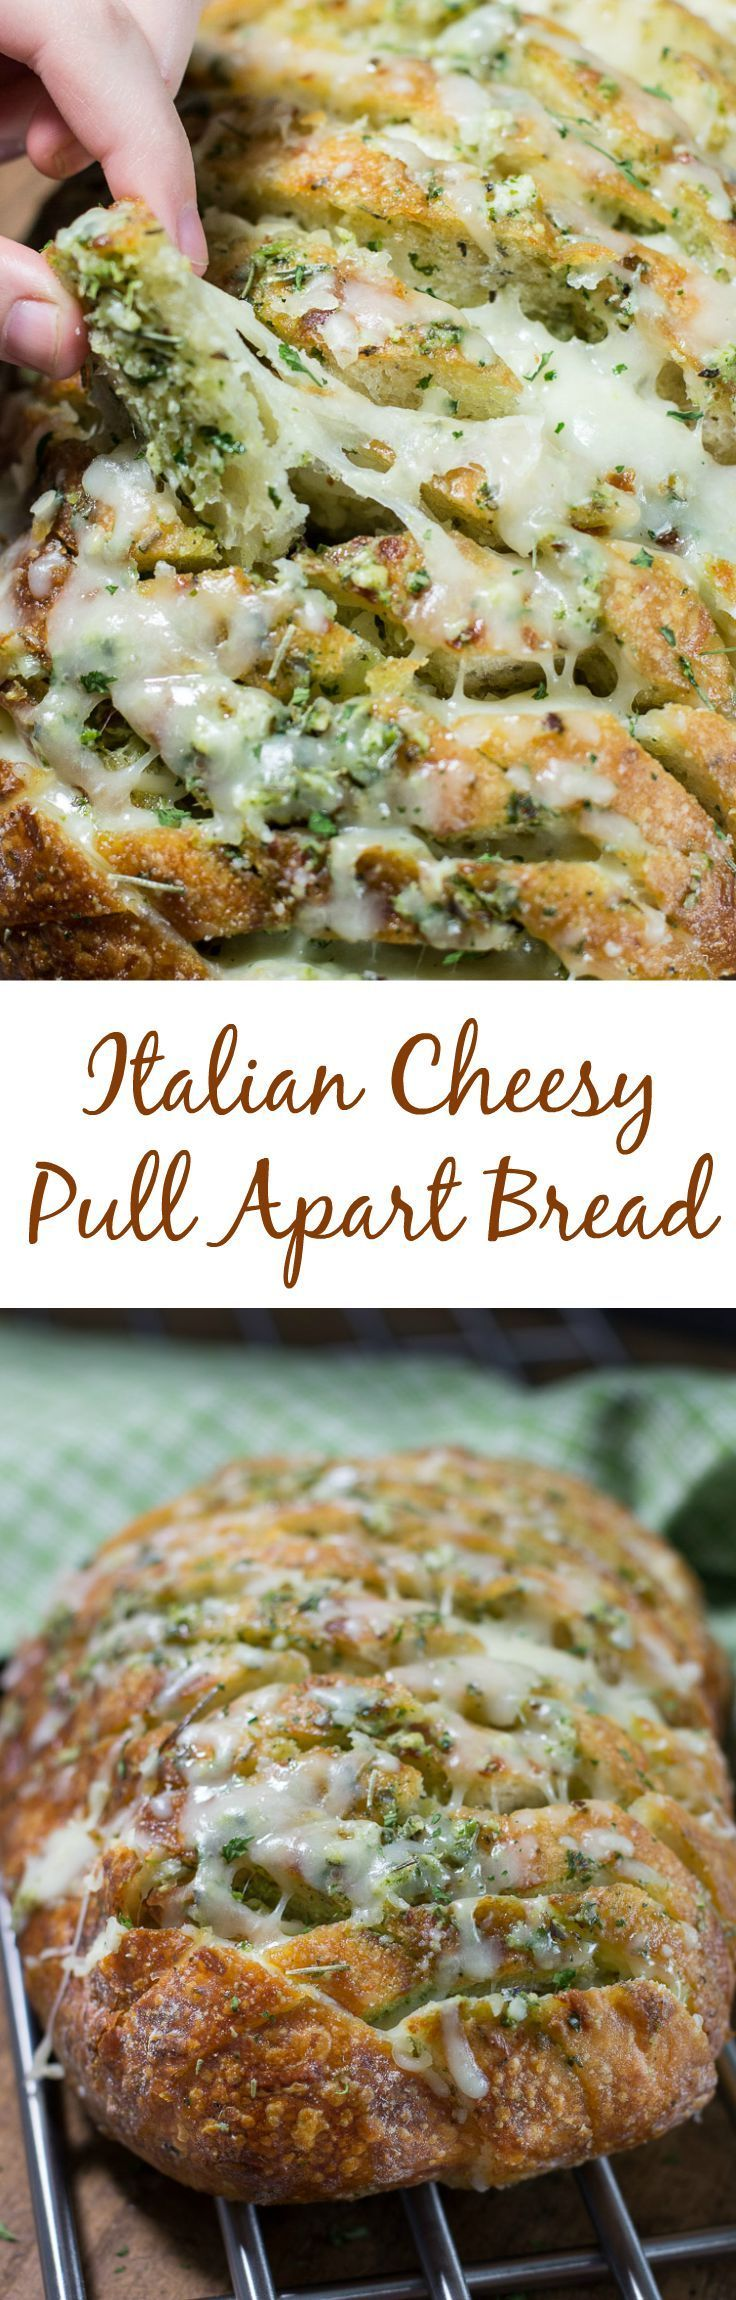 Italian Cheesy Pull Apart Bread | Crazy good and addictive, this Italian Cheesy Pull Apart Bread is sure to be a crowd pleaser. The loaf is filled with a buttery garlic, pesto and Italian herb mixture then generously stuffed with mozzarella cheese to create each perfect bite for this pull apart Italian bread.